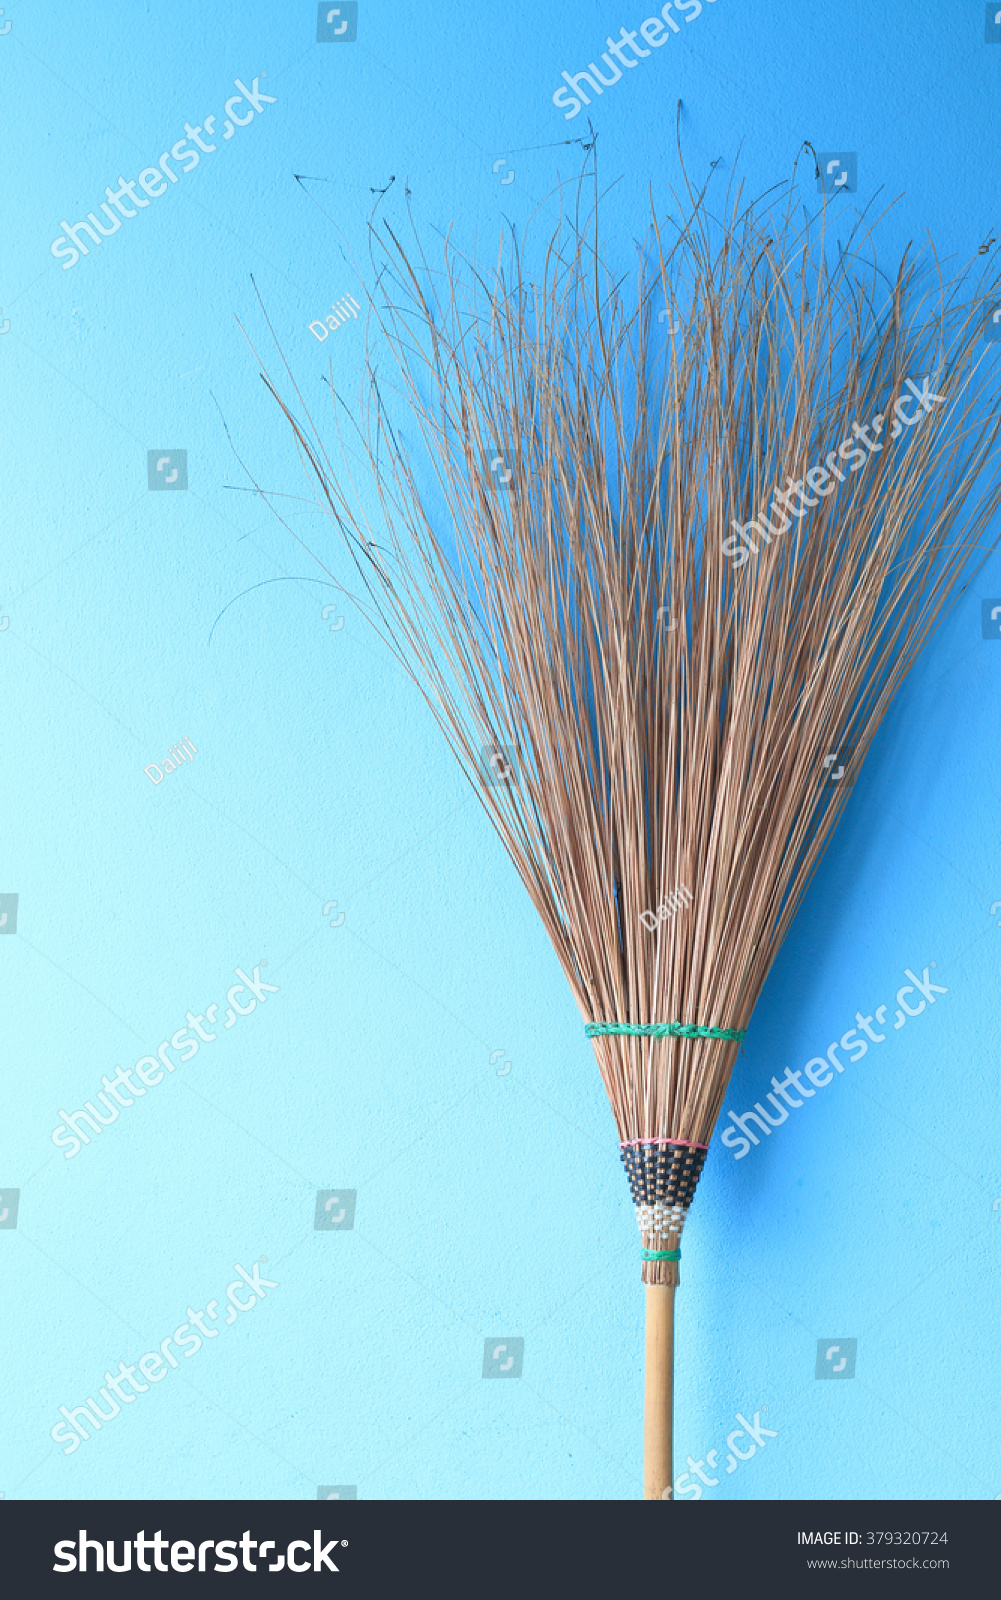 Broom Leaning Against Blue Wall Stock Photo (Edit Now) 379320724 ...